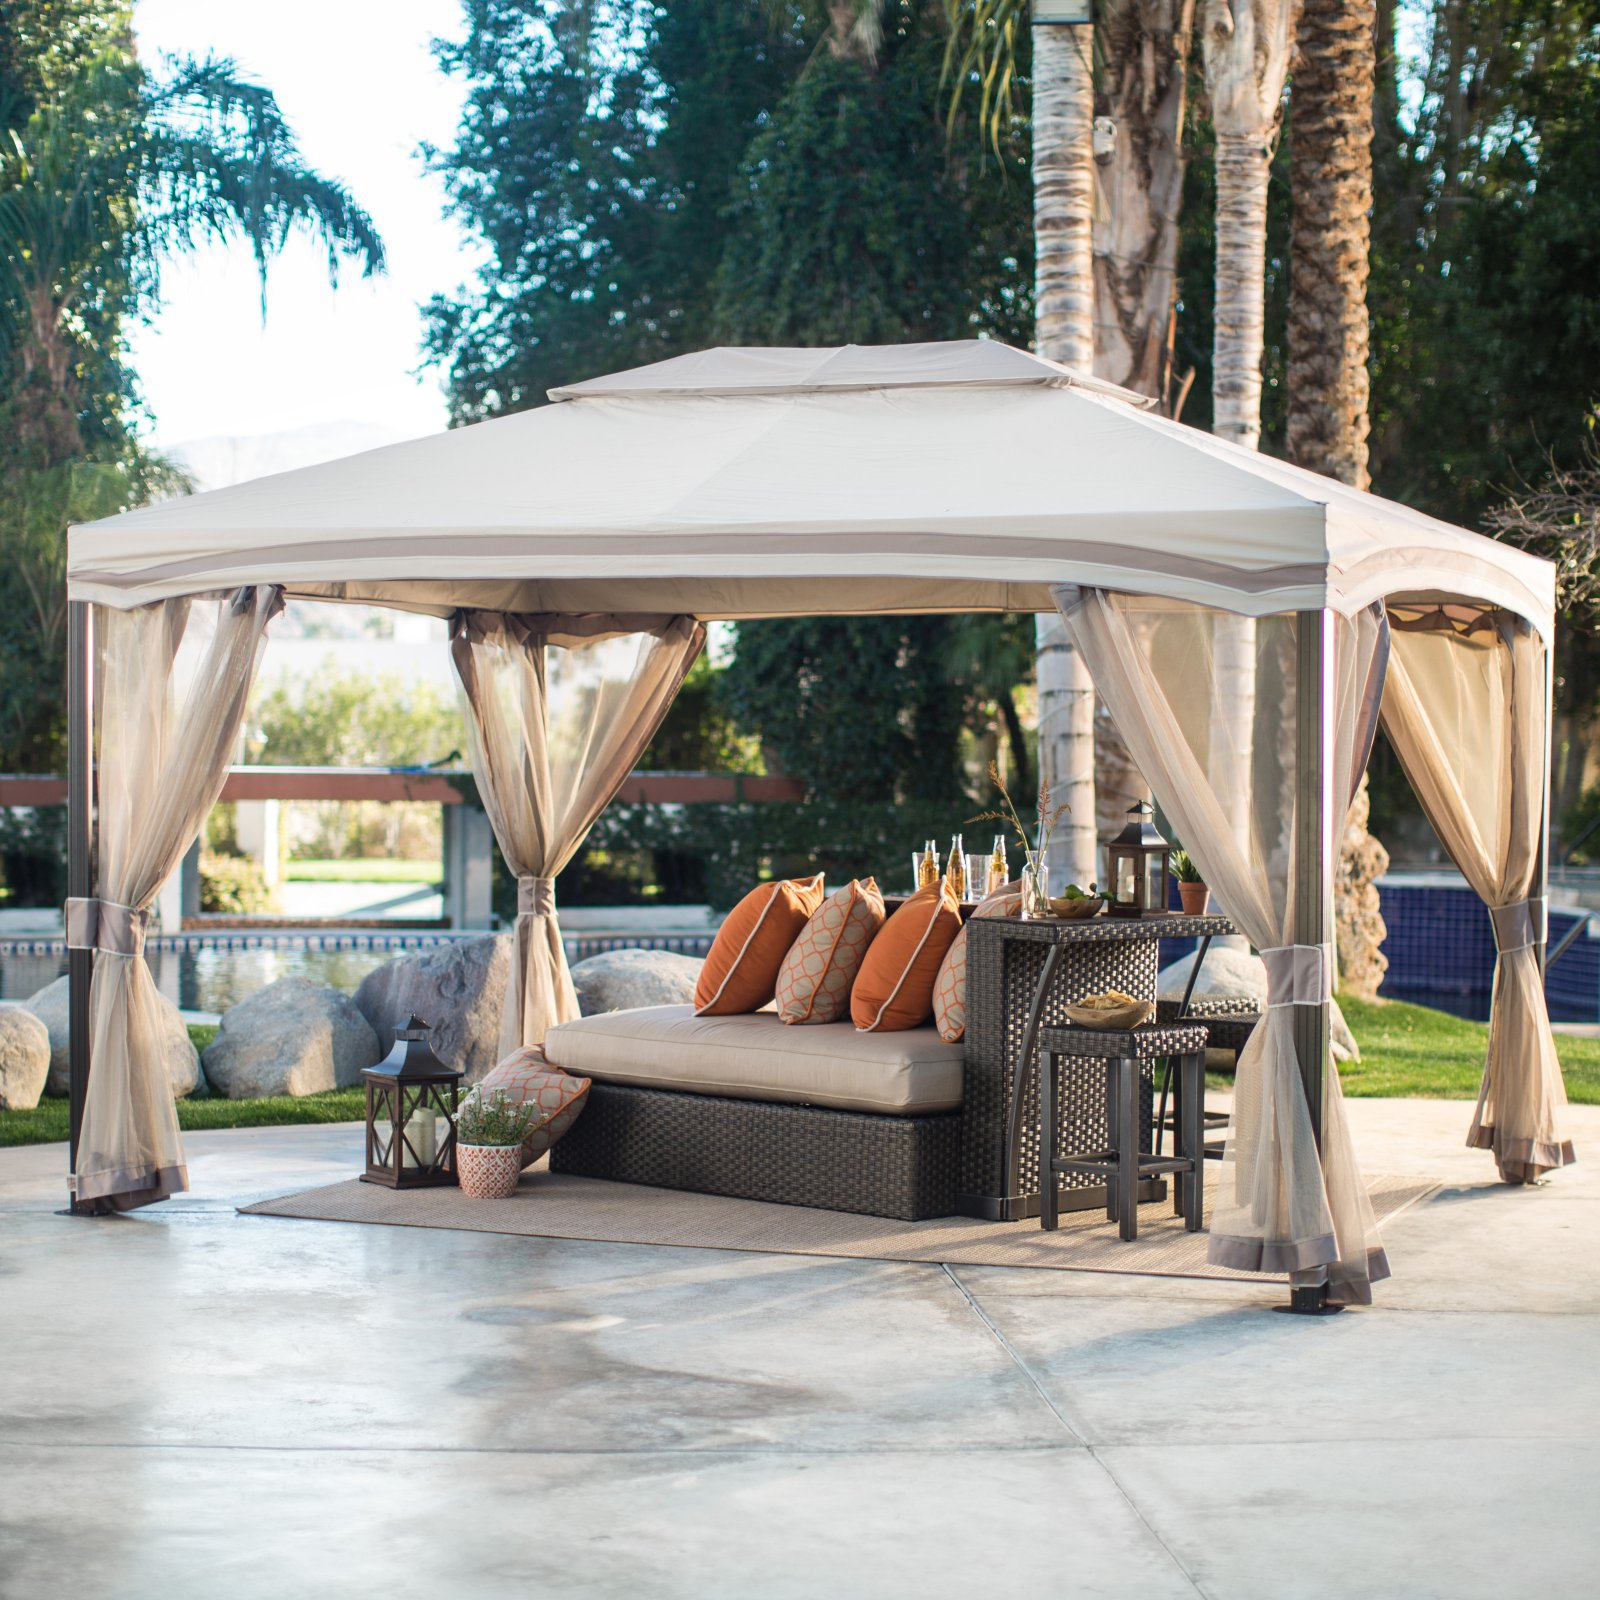 Belham Living Catina 13 x 10 ft. Cabin Style Garden House Canopy Gazebo by Pacific Casual LLC